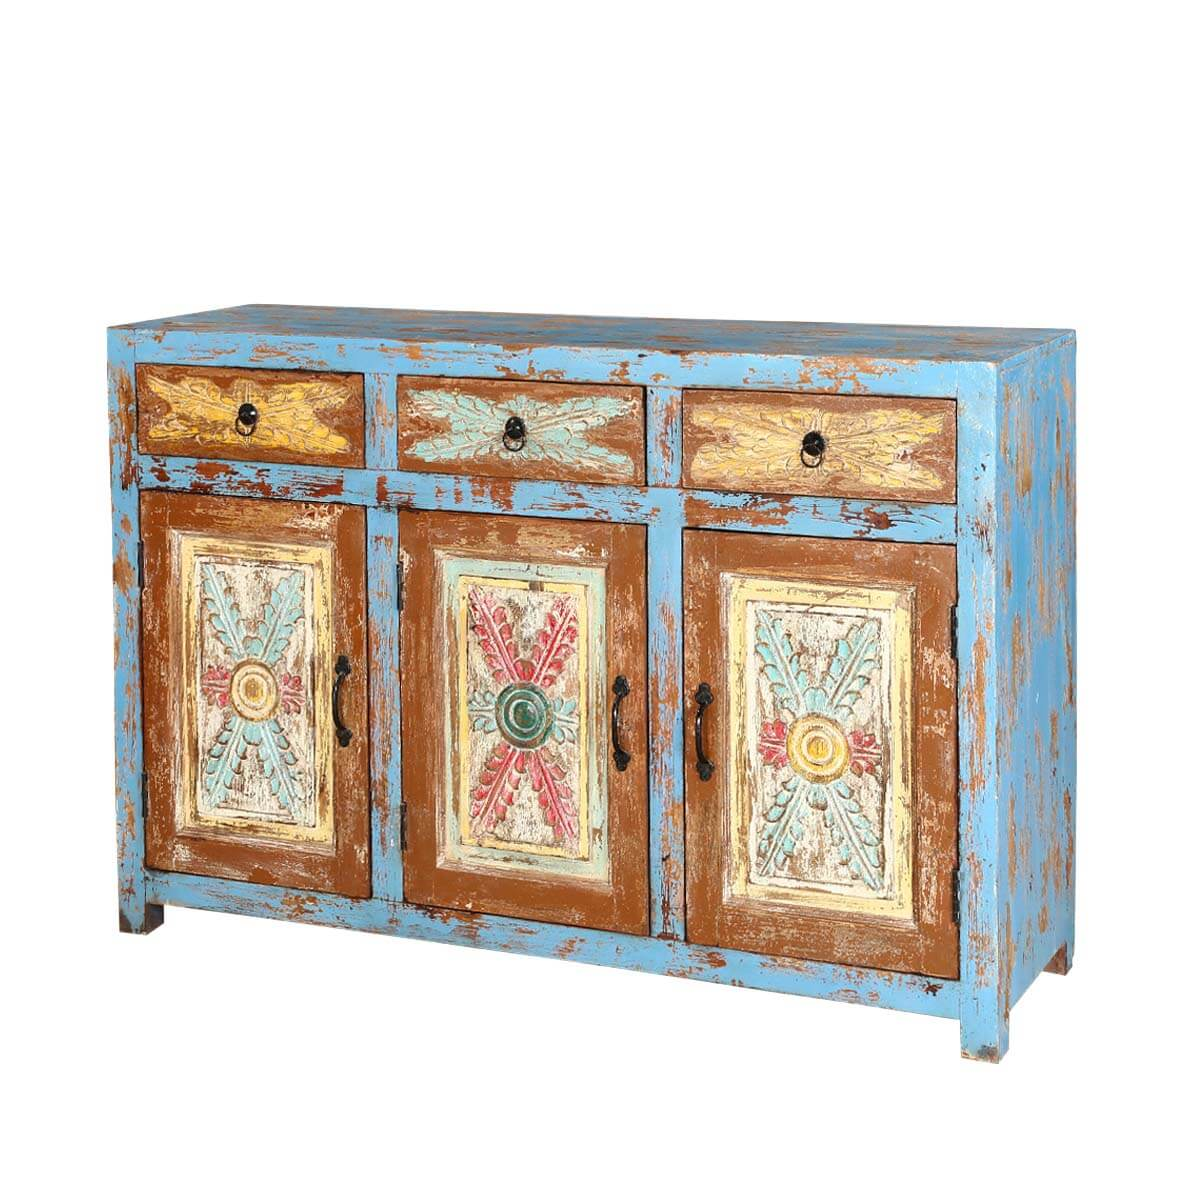 Le Meilleur Tangier 53 Rustic Light Blue 3 Door 3 Drawer Buffet Sideboard Ce Mois Ci